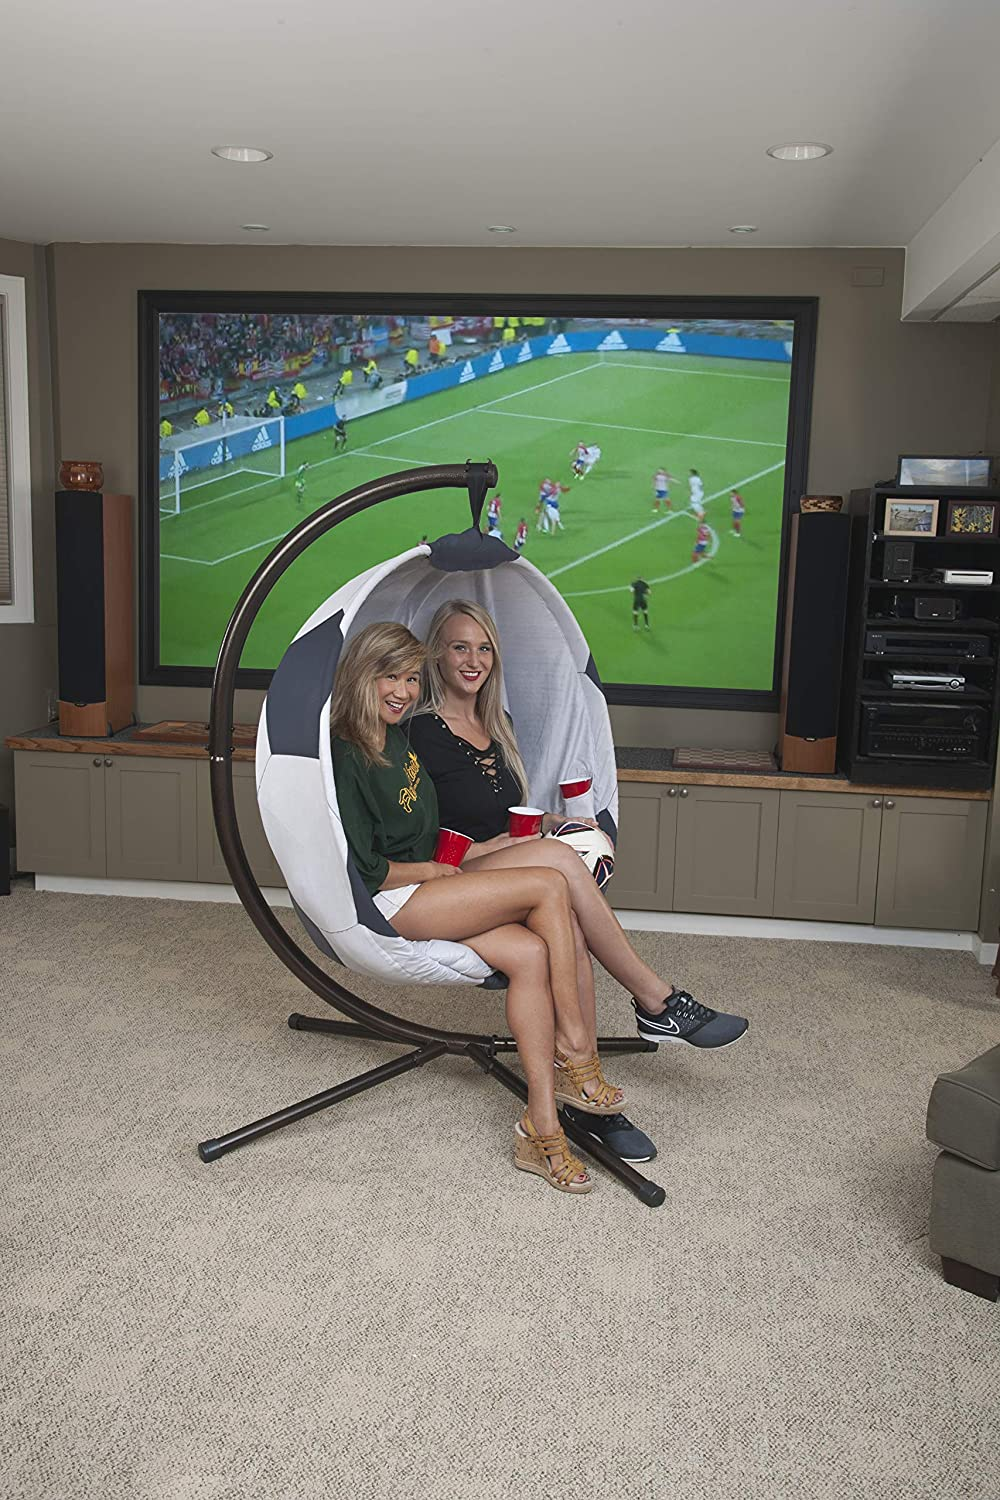 558610412 Amazon.com: Flowerhouse Soccerball Hanging Lounge Chair with Stand FHSB100:  Garden & Outdoor